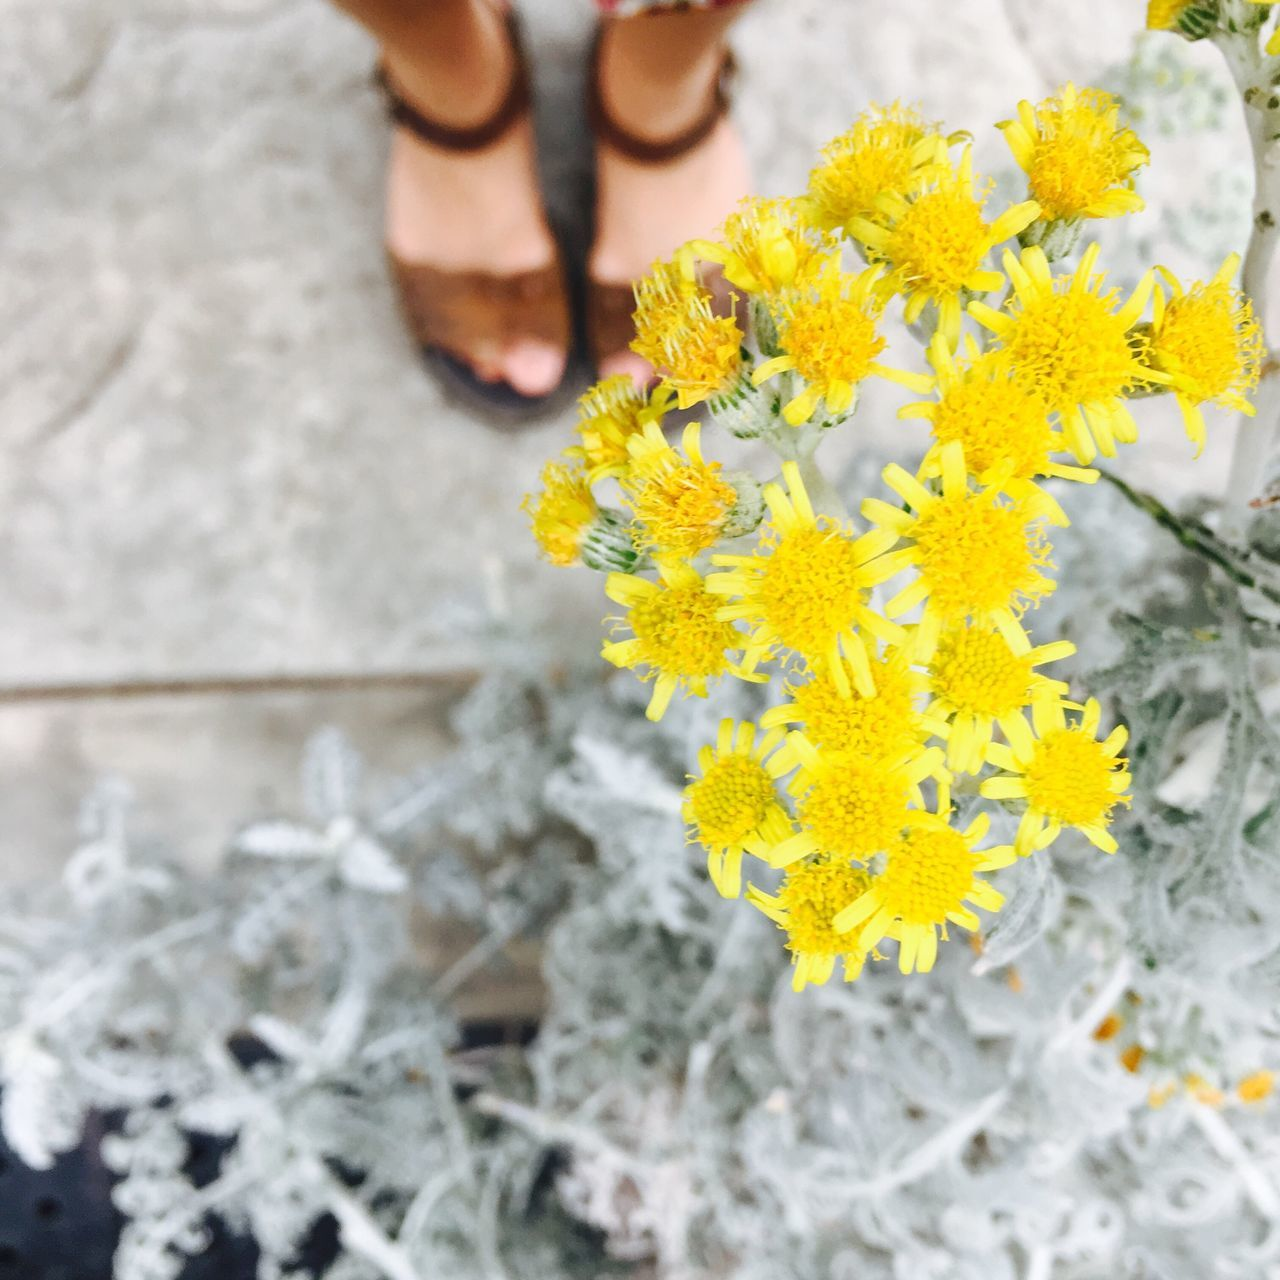 Happy Feet Flower Yellow Low Section Human Leg Human Body Part Real People Close-up Outdoors One Person Day Freshness Petal Focus On Foreground Fragility Nature Lifestyles Beauty In Nature Women Flower Head Human Hand